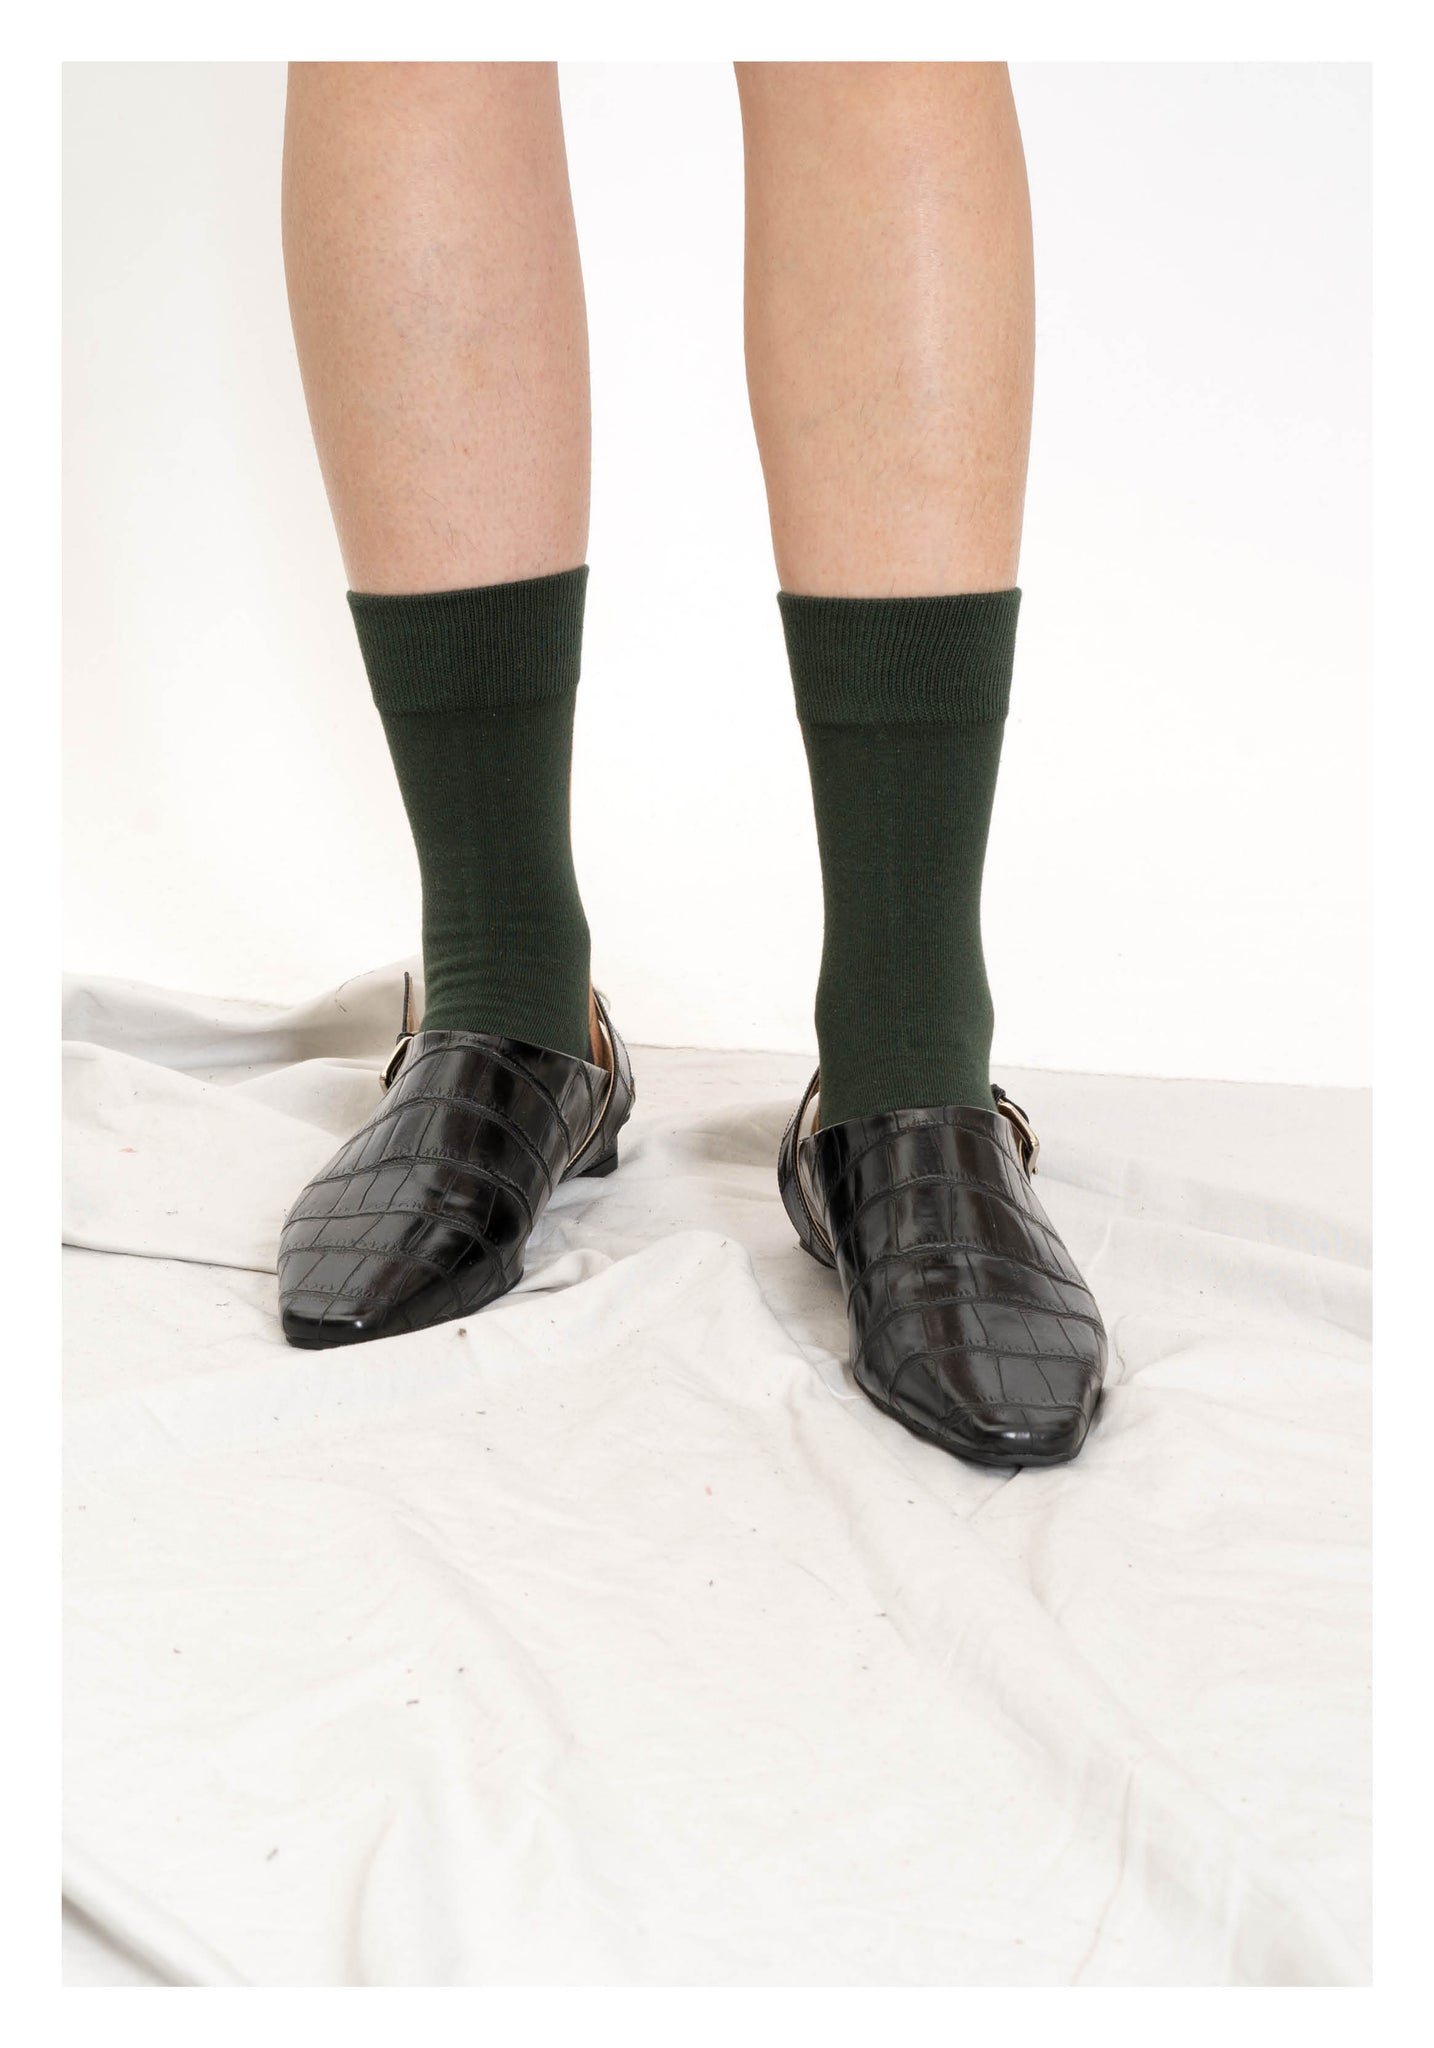 Colour Block Socks Brown And Green - whoami